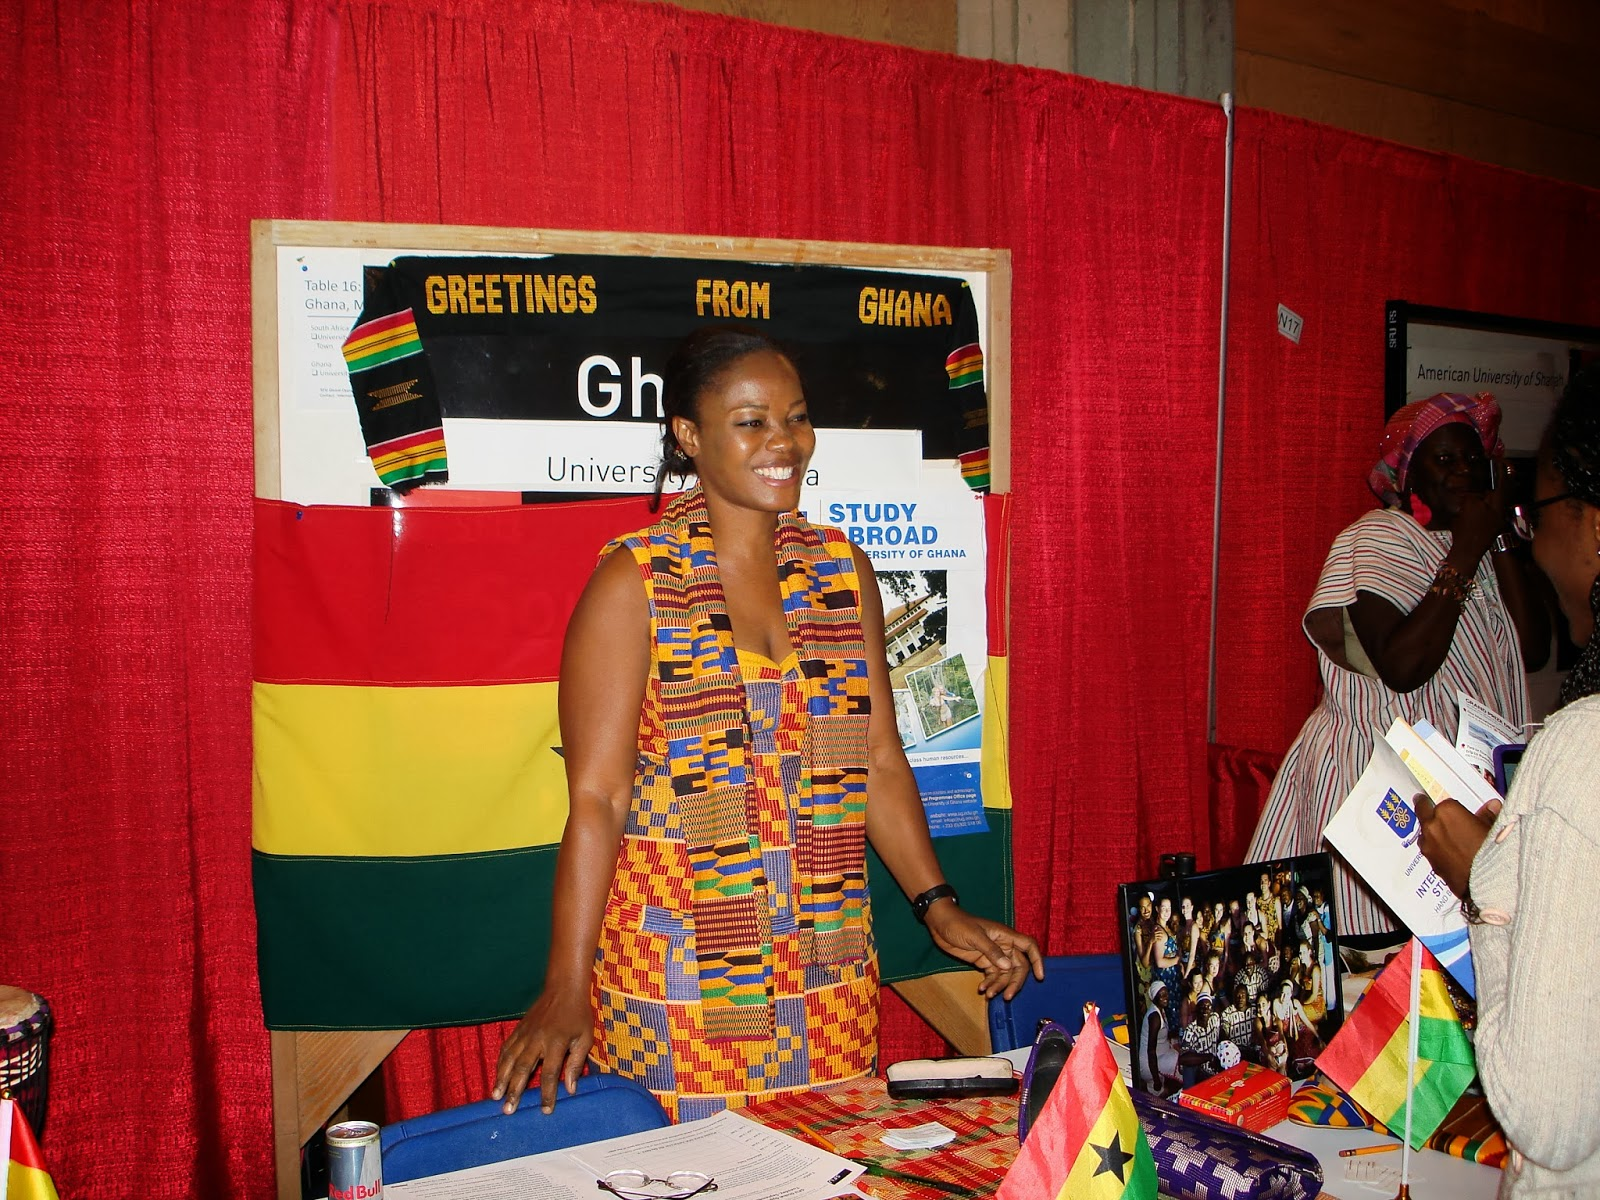 University of ghana exchange programme participants represent ug in with our faculty members themselves decked out in traditional apparel the stand they set up portrayed ghanaian culture in a unique way m4hsunfo Gallery